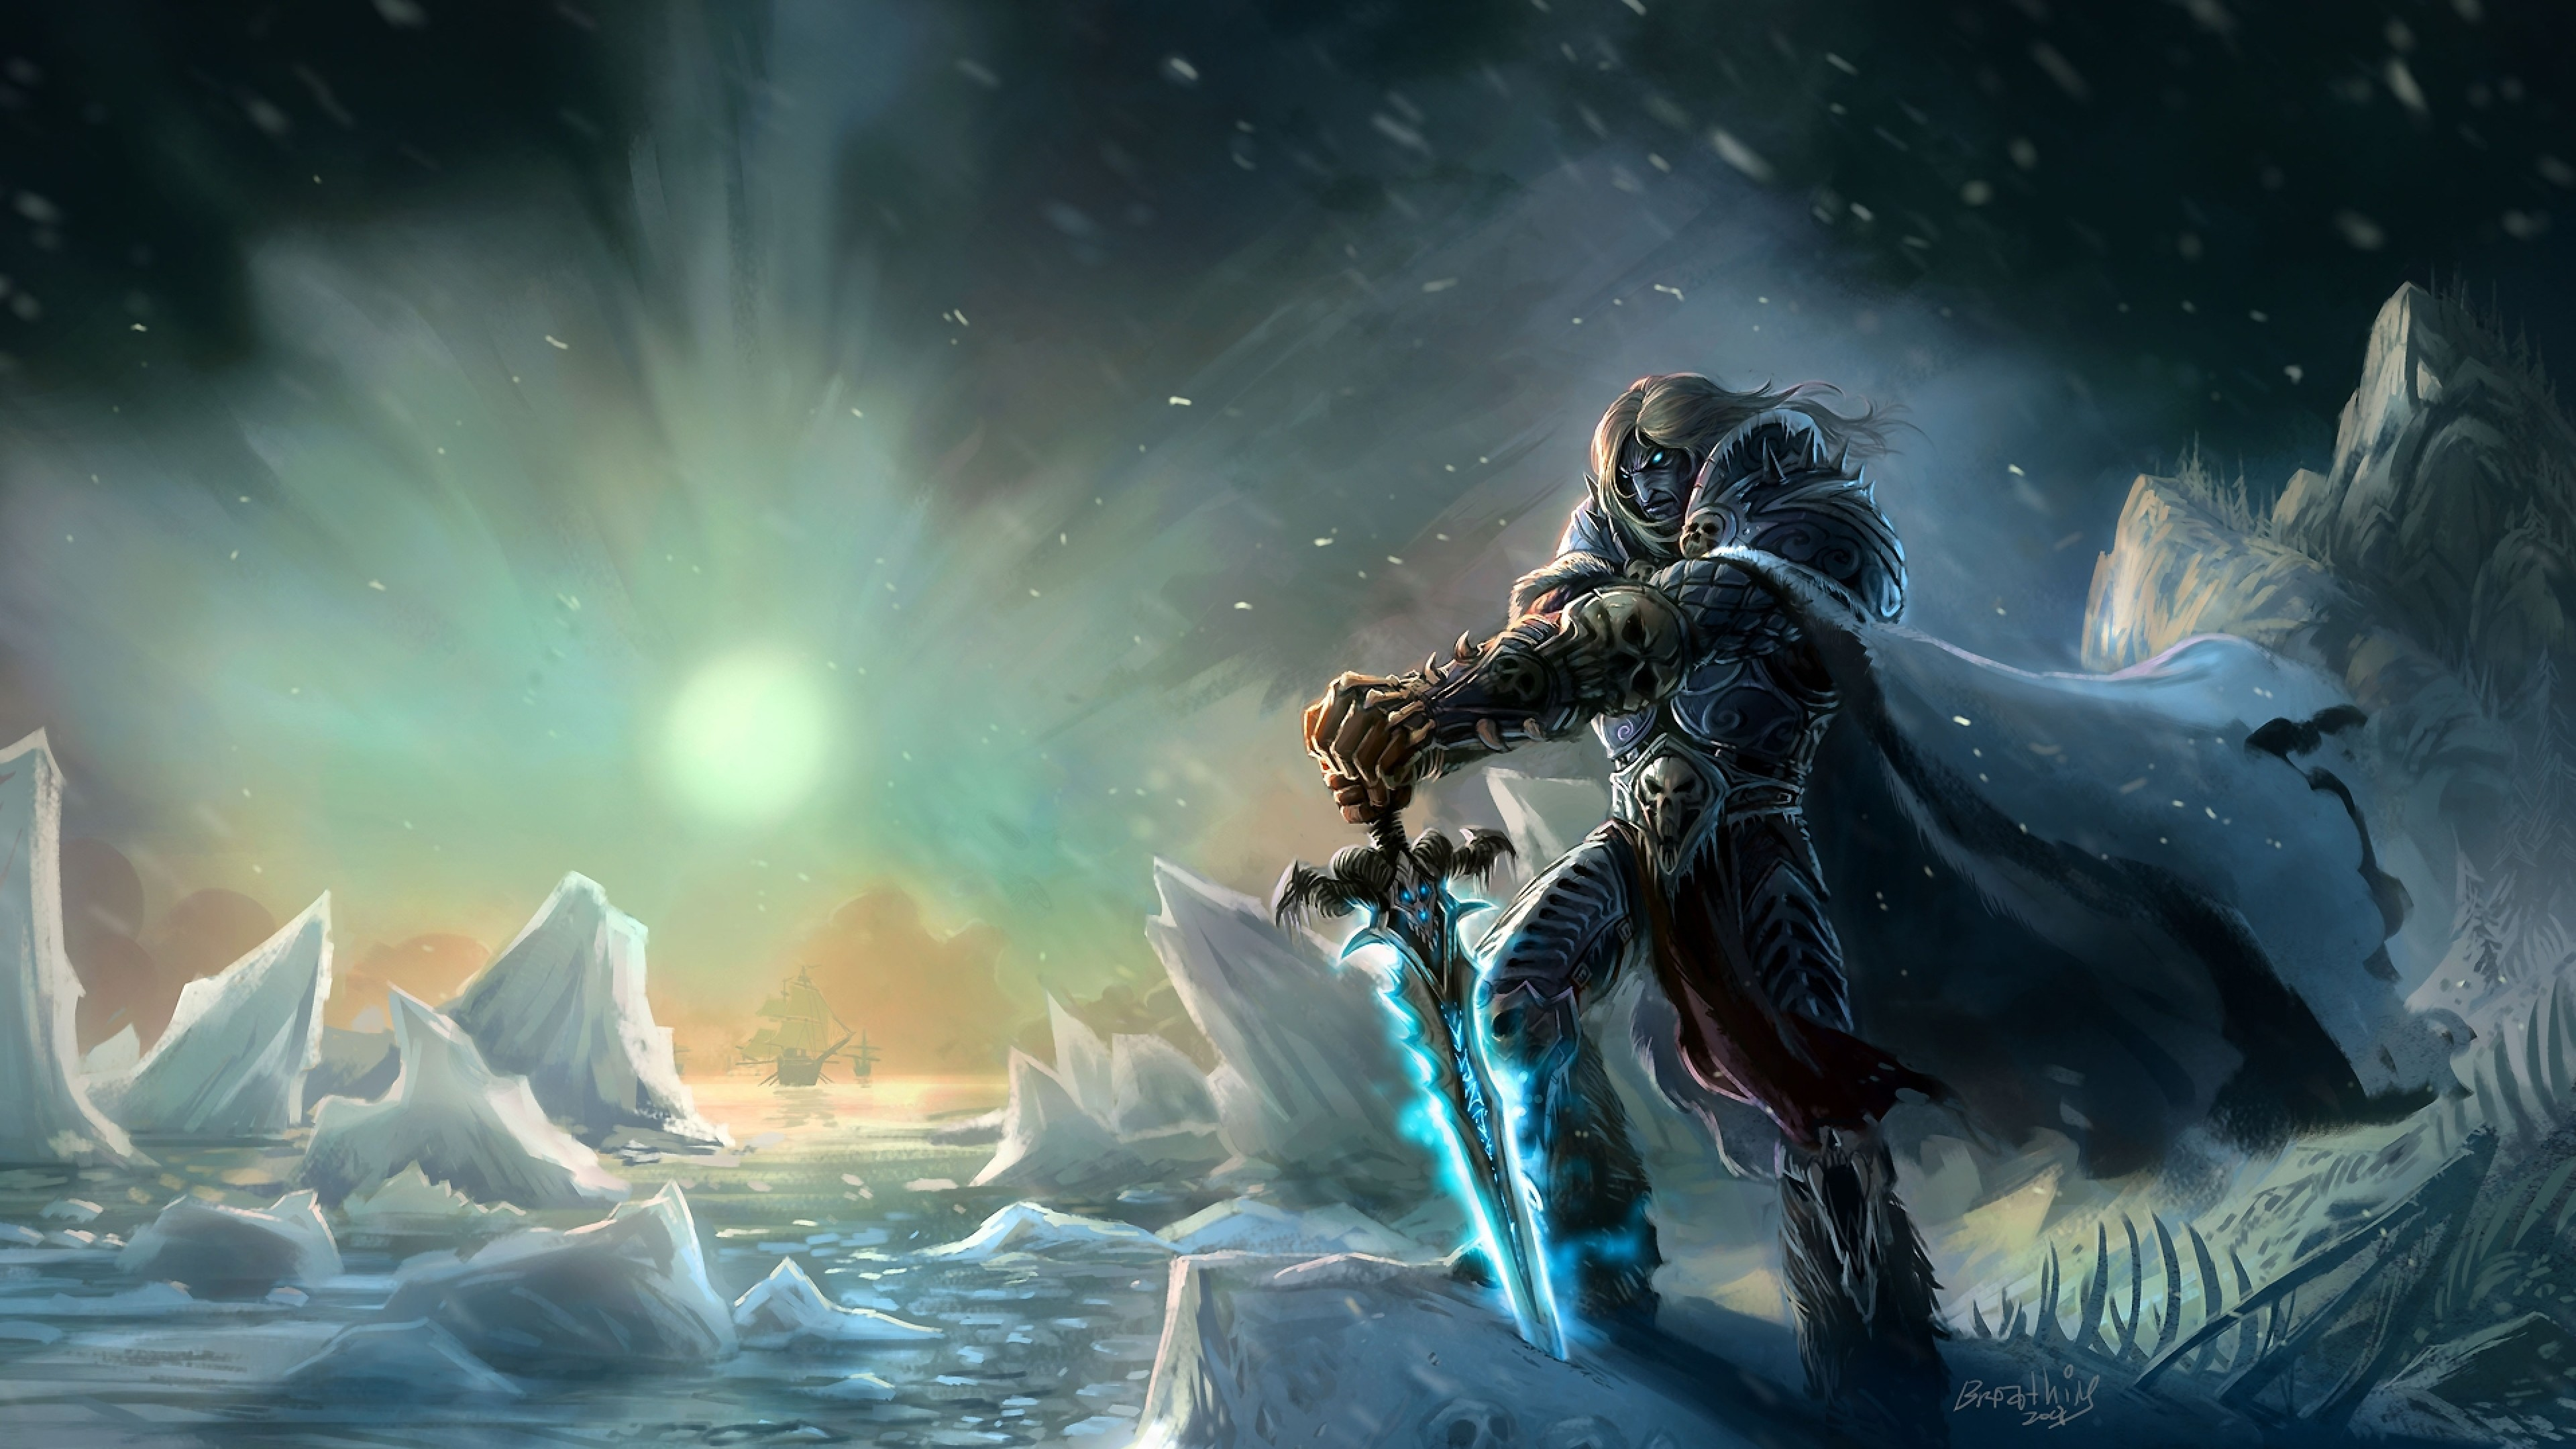 10 Latest Video Game Wallpapers 2560x1440 Full Hd 1080p: 3840 X 2160 Wallpaper (59+ Images